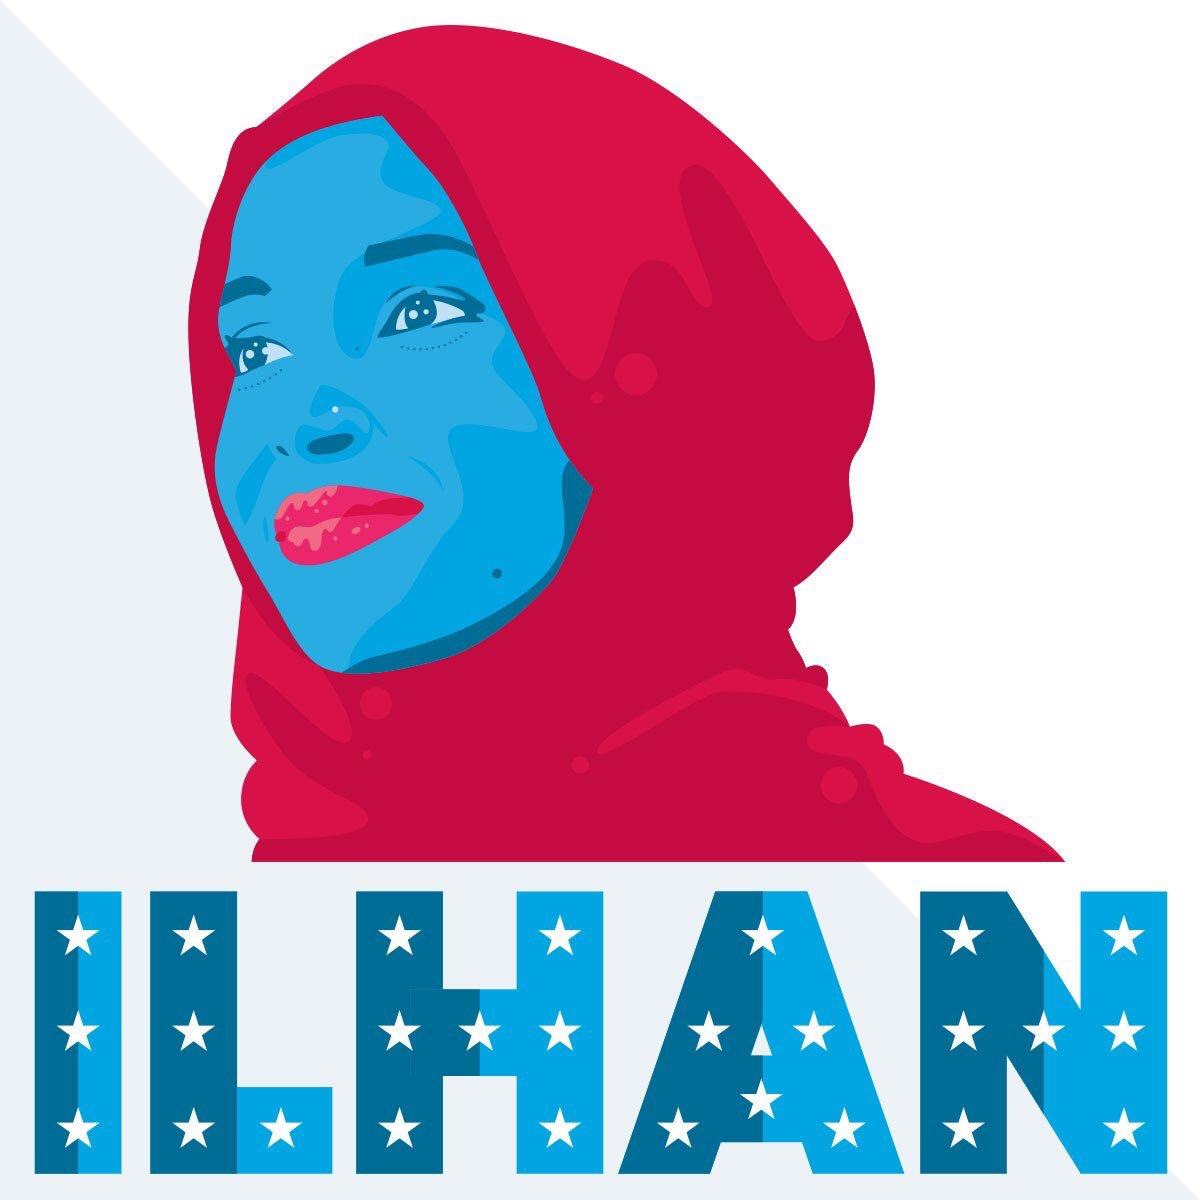 I #StandWithIlhan I voted for her. based on her work & what she's shown us, I'd vote for her again. poster designed by @Mike2600